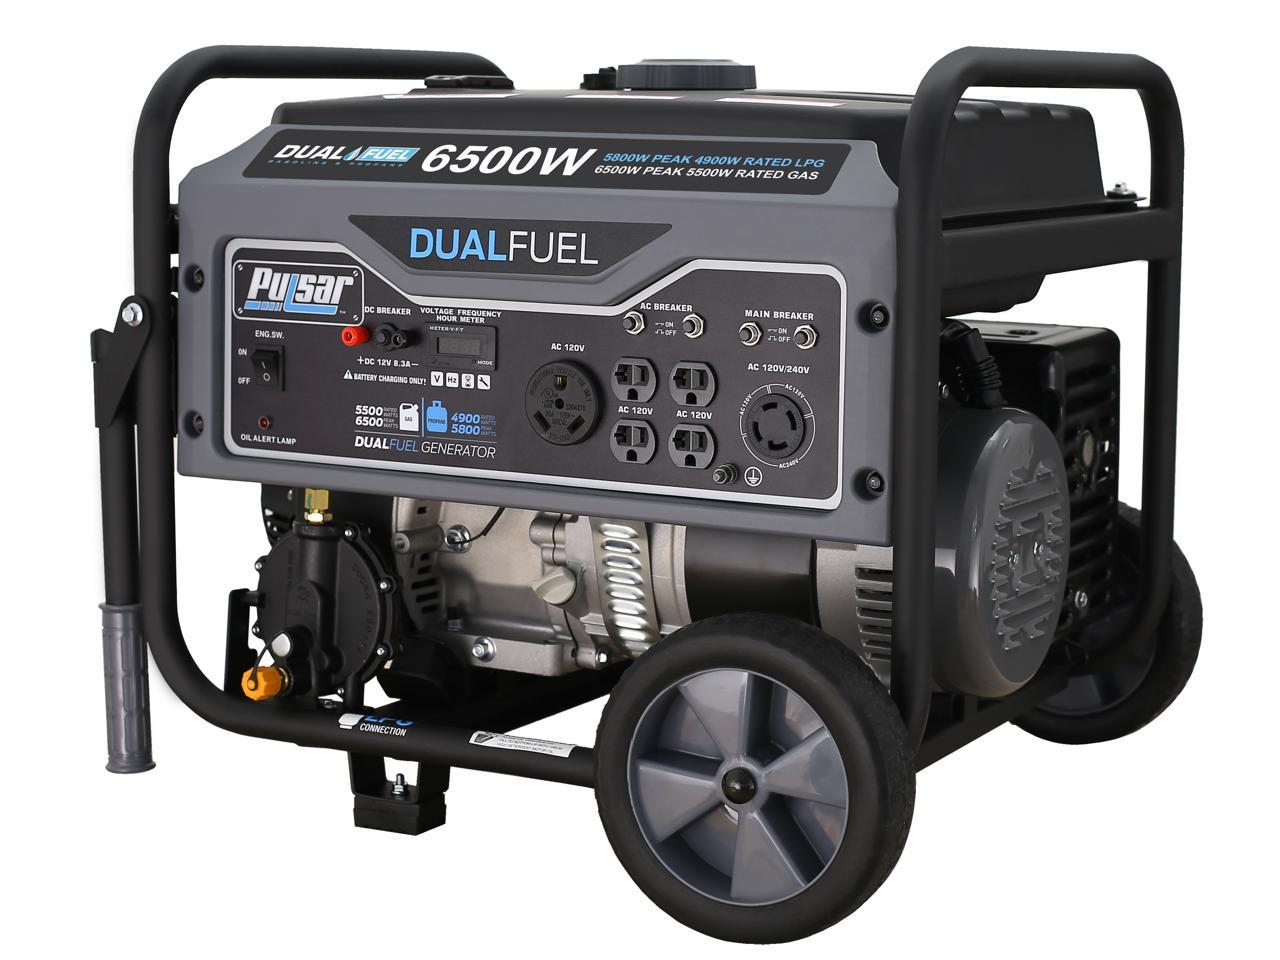 Pulsar G65BN Portable Gas/LPG Dual Fuel Generator, 5500 Rated Watts & 6500 Peak Watts, RV Ready, CARB Compliant